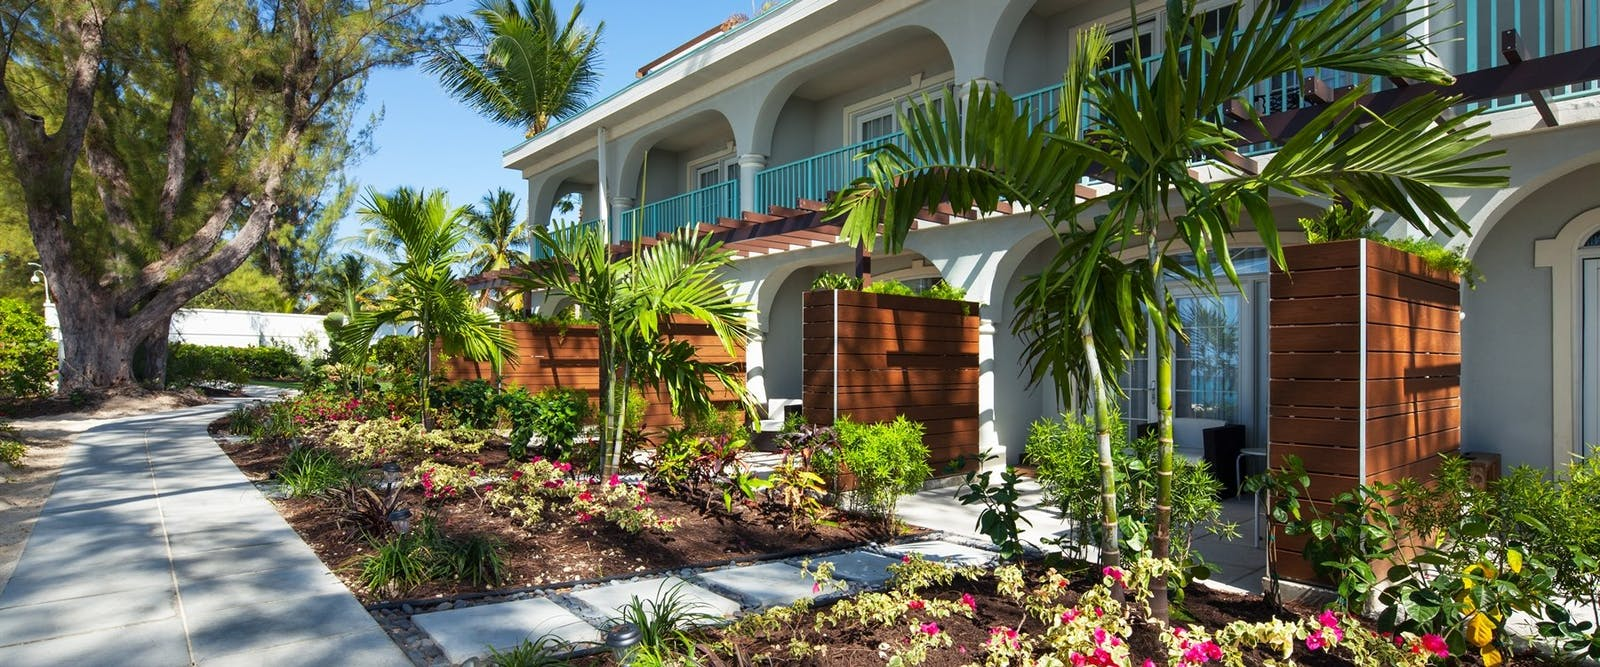 Exterior of Bedrooms at The Westin Grand Cayman Seven Mile Beach Resort & Spa, Cayman Islands